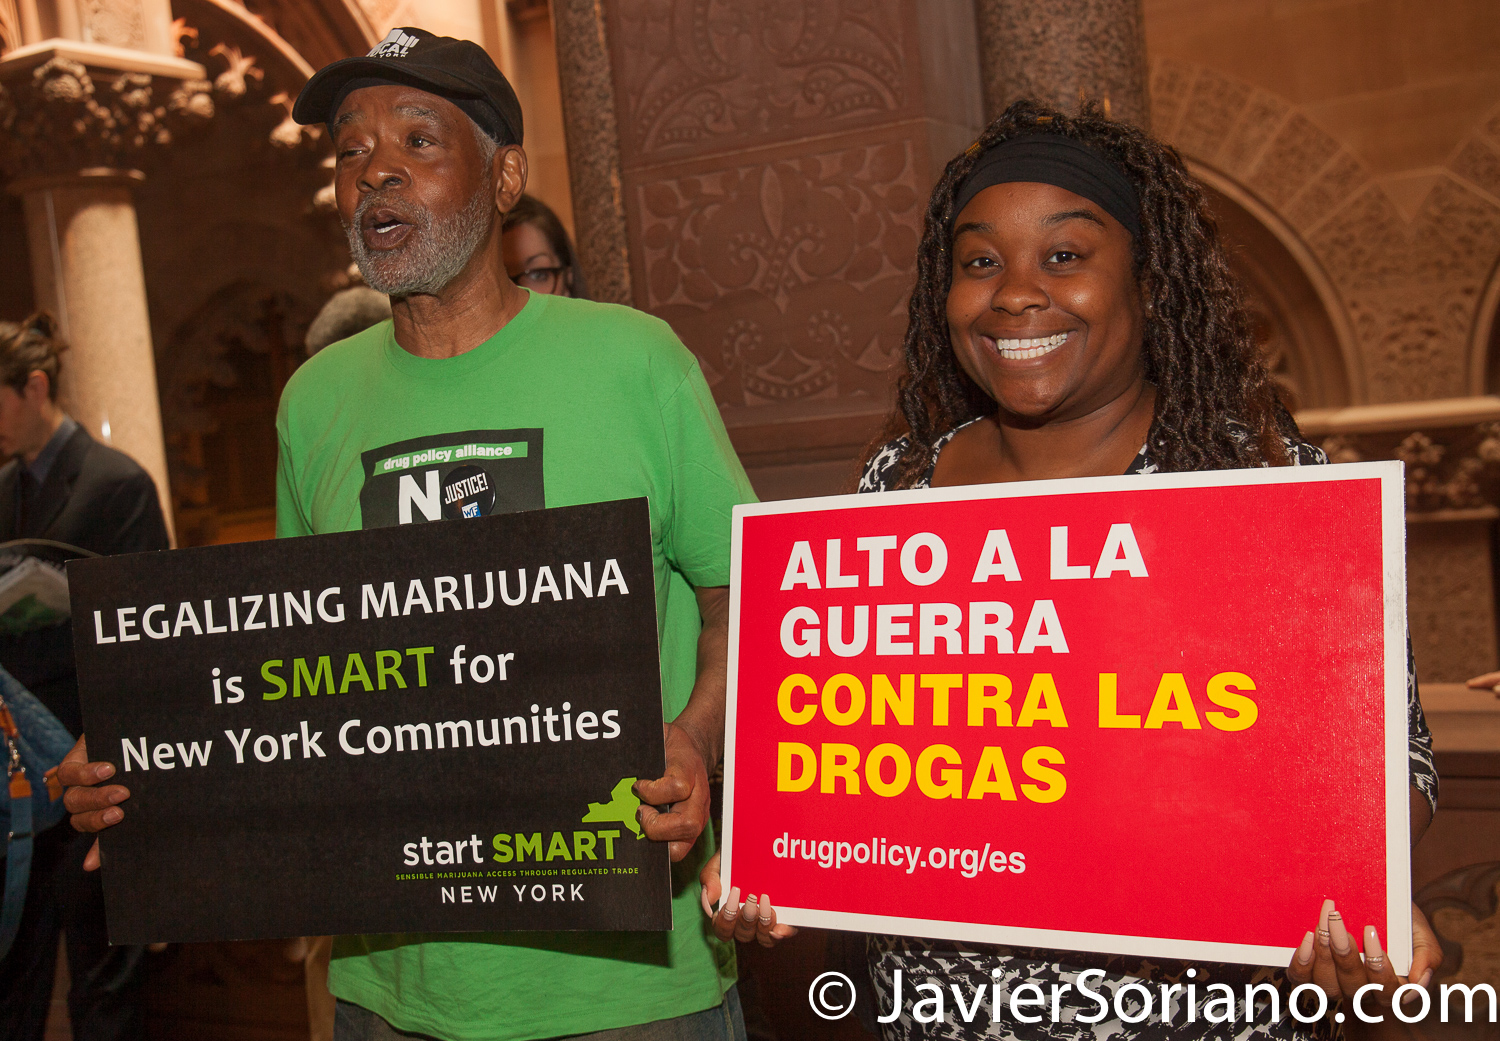 Tuesday, May 8, 2018. Albany, New York - Activists from different cities in New York State traveled to Albany, the capital of the state, to demand the legalization of marijuana in New York State with a focus on racial and economic justice. Left to right: Member of VOCAL-NY and Kassandra Frederique was the New York State Director at the Drug Policy Alliance (DPA). Today, Kassandra Frederique is the executive director of the Drug Policy Alliance. Photo by Javier Soriano/www.JavierSoriano.com